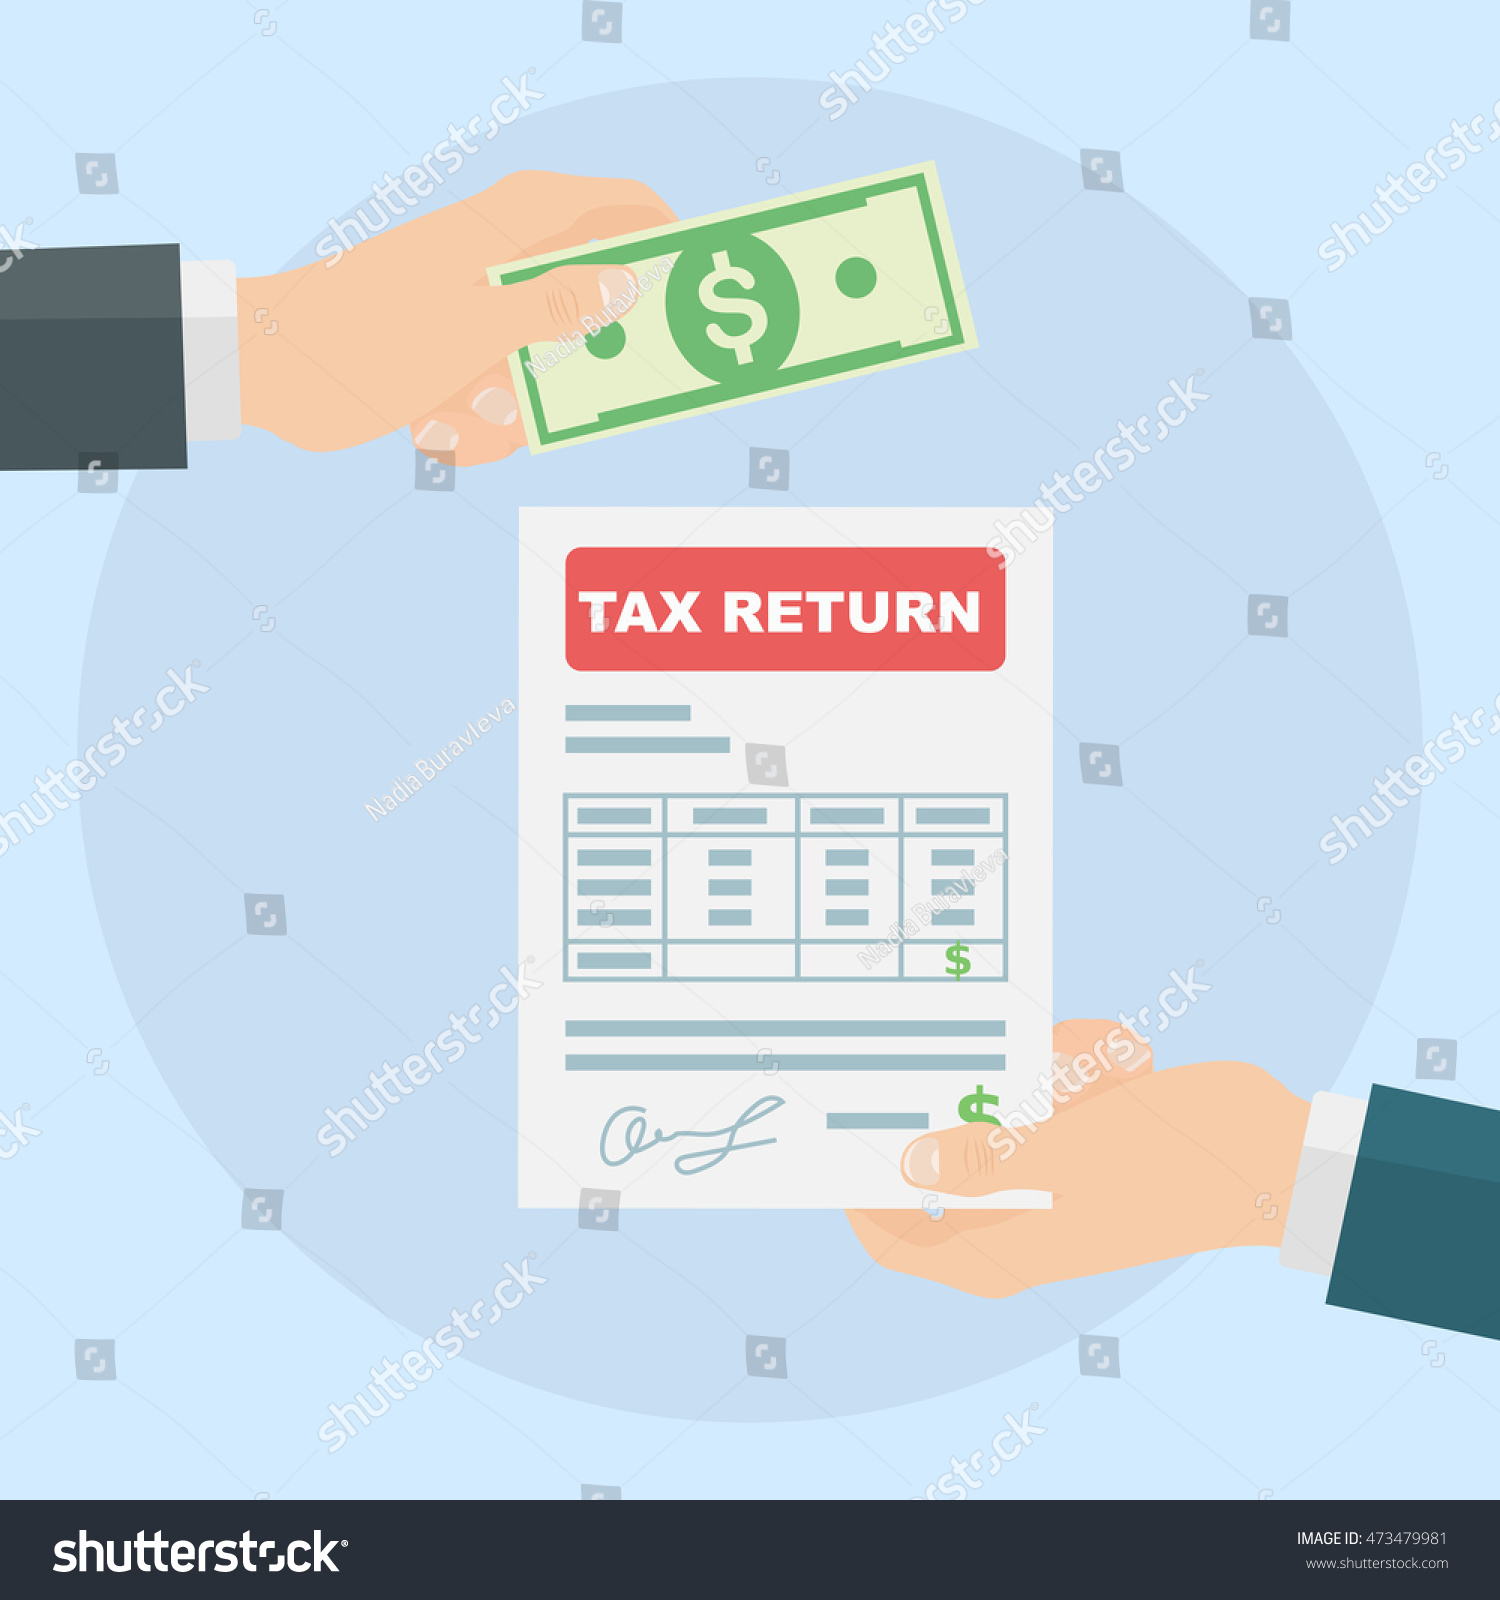 flat tax bill essay This paper discusses introduction a flat tax reform in america's federal income tax law to analyze the flat tax, the current income tax and the proposed flat tax structure is compared as well as a definition of progressive taxation.